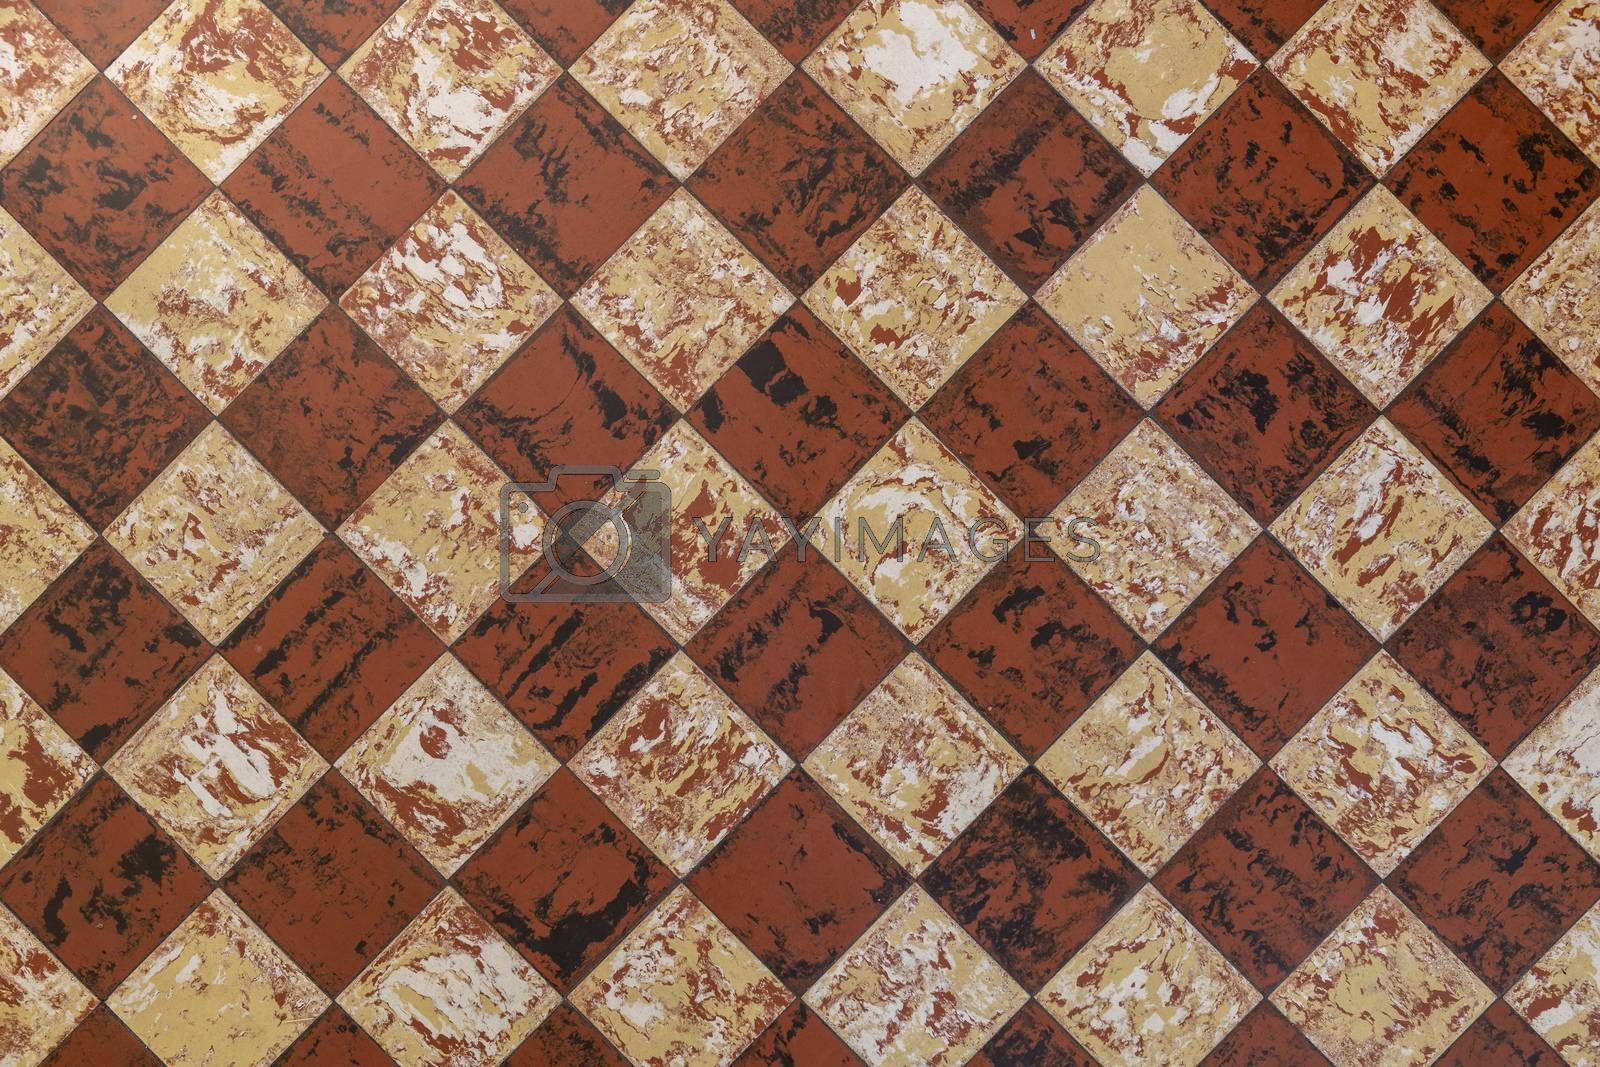 Old-fashioned antique brown beige floor tiles in a characteristic old farmhouse in the Netherlands as a full-screen background photo.